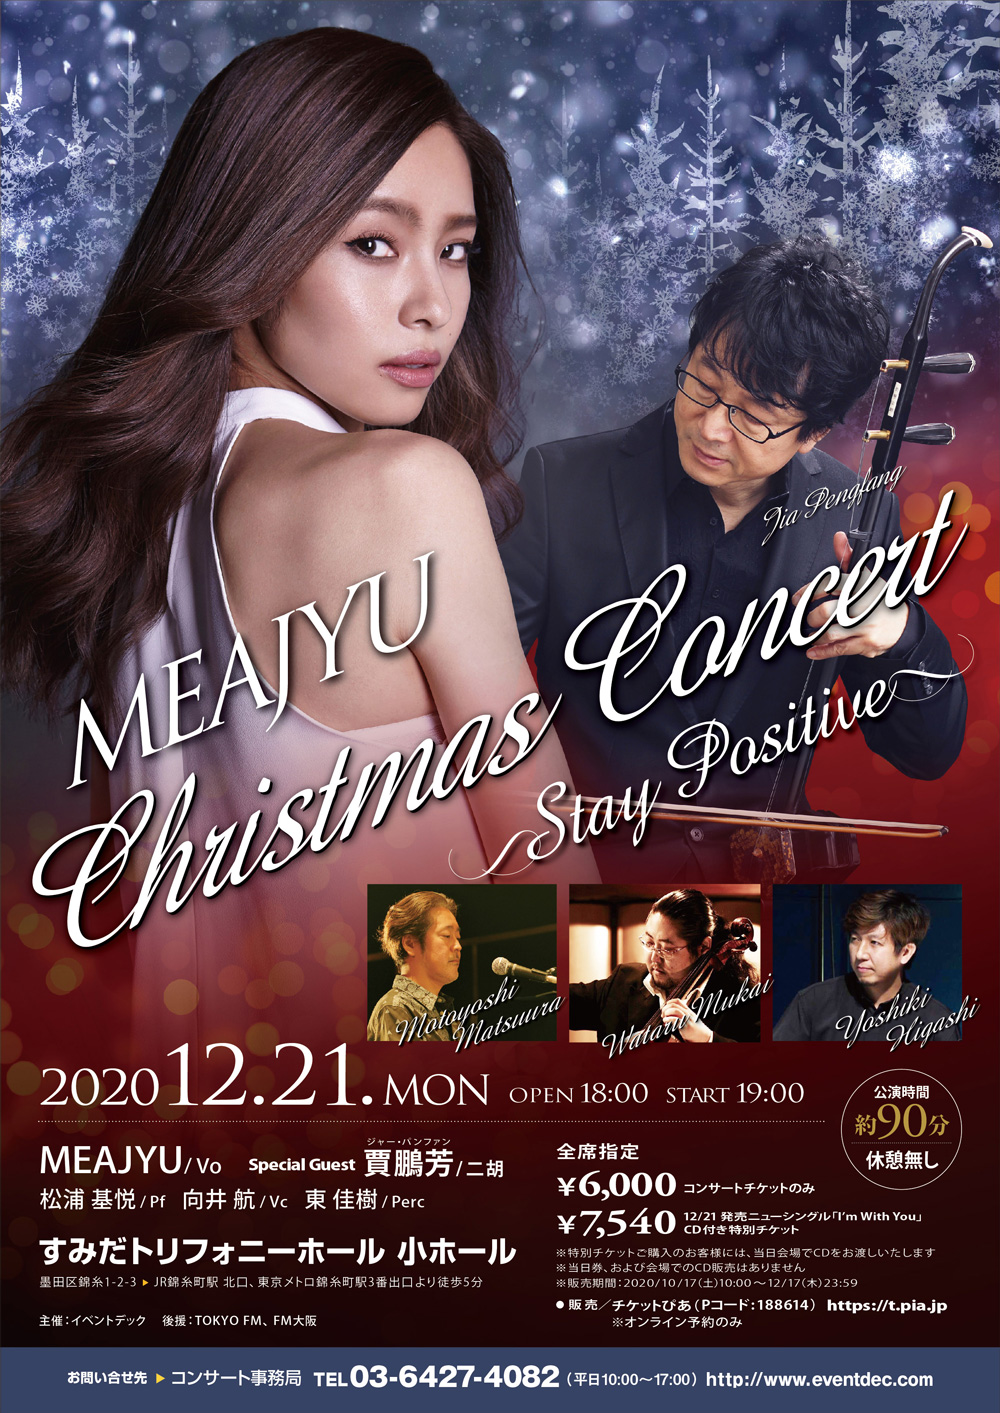 MEAJYU Christmas Concert ~Stay Positive~